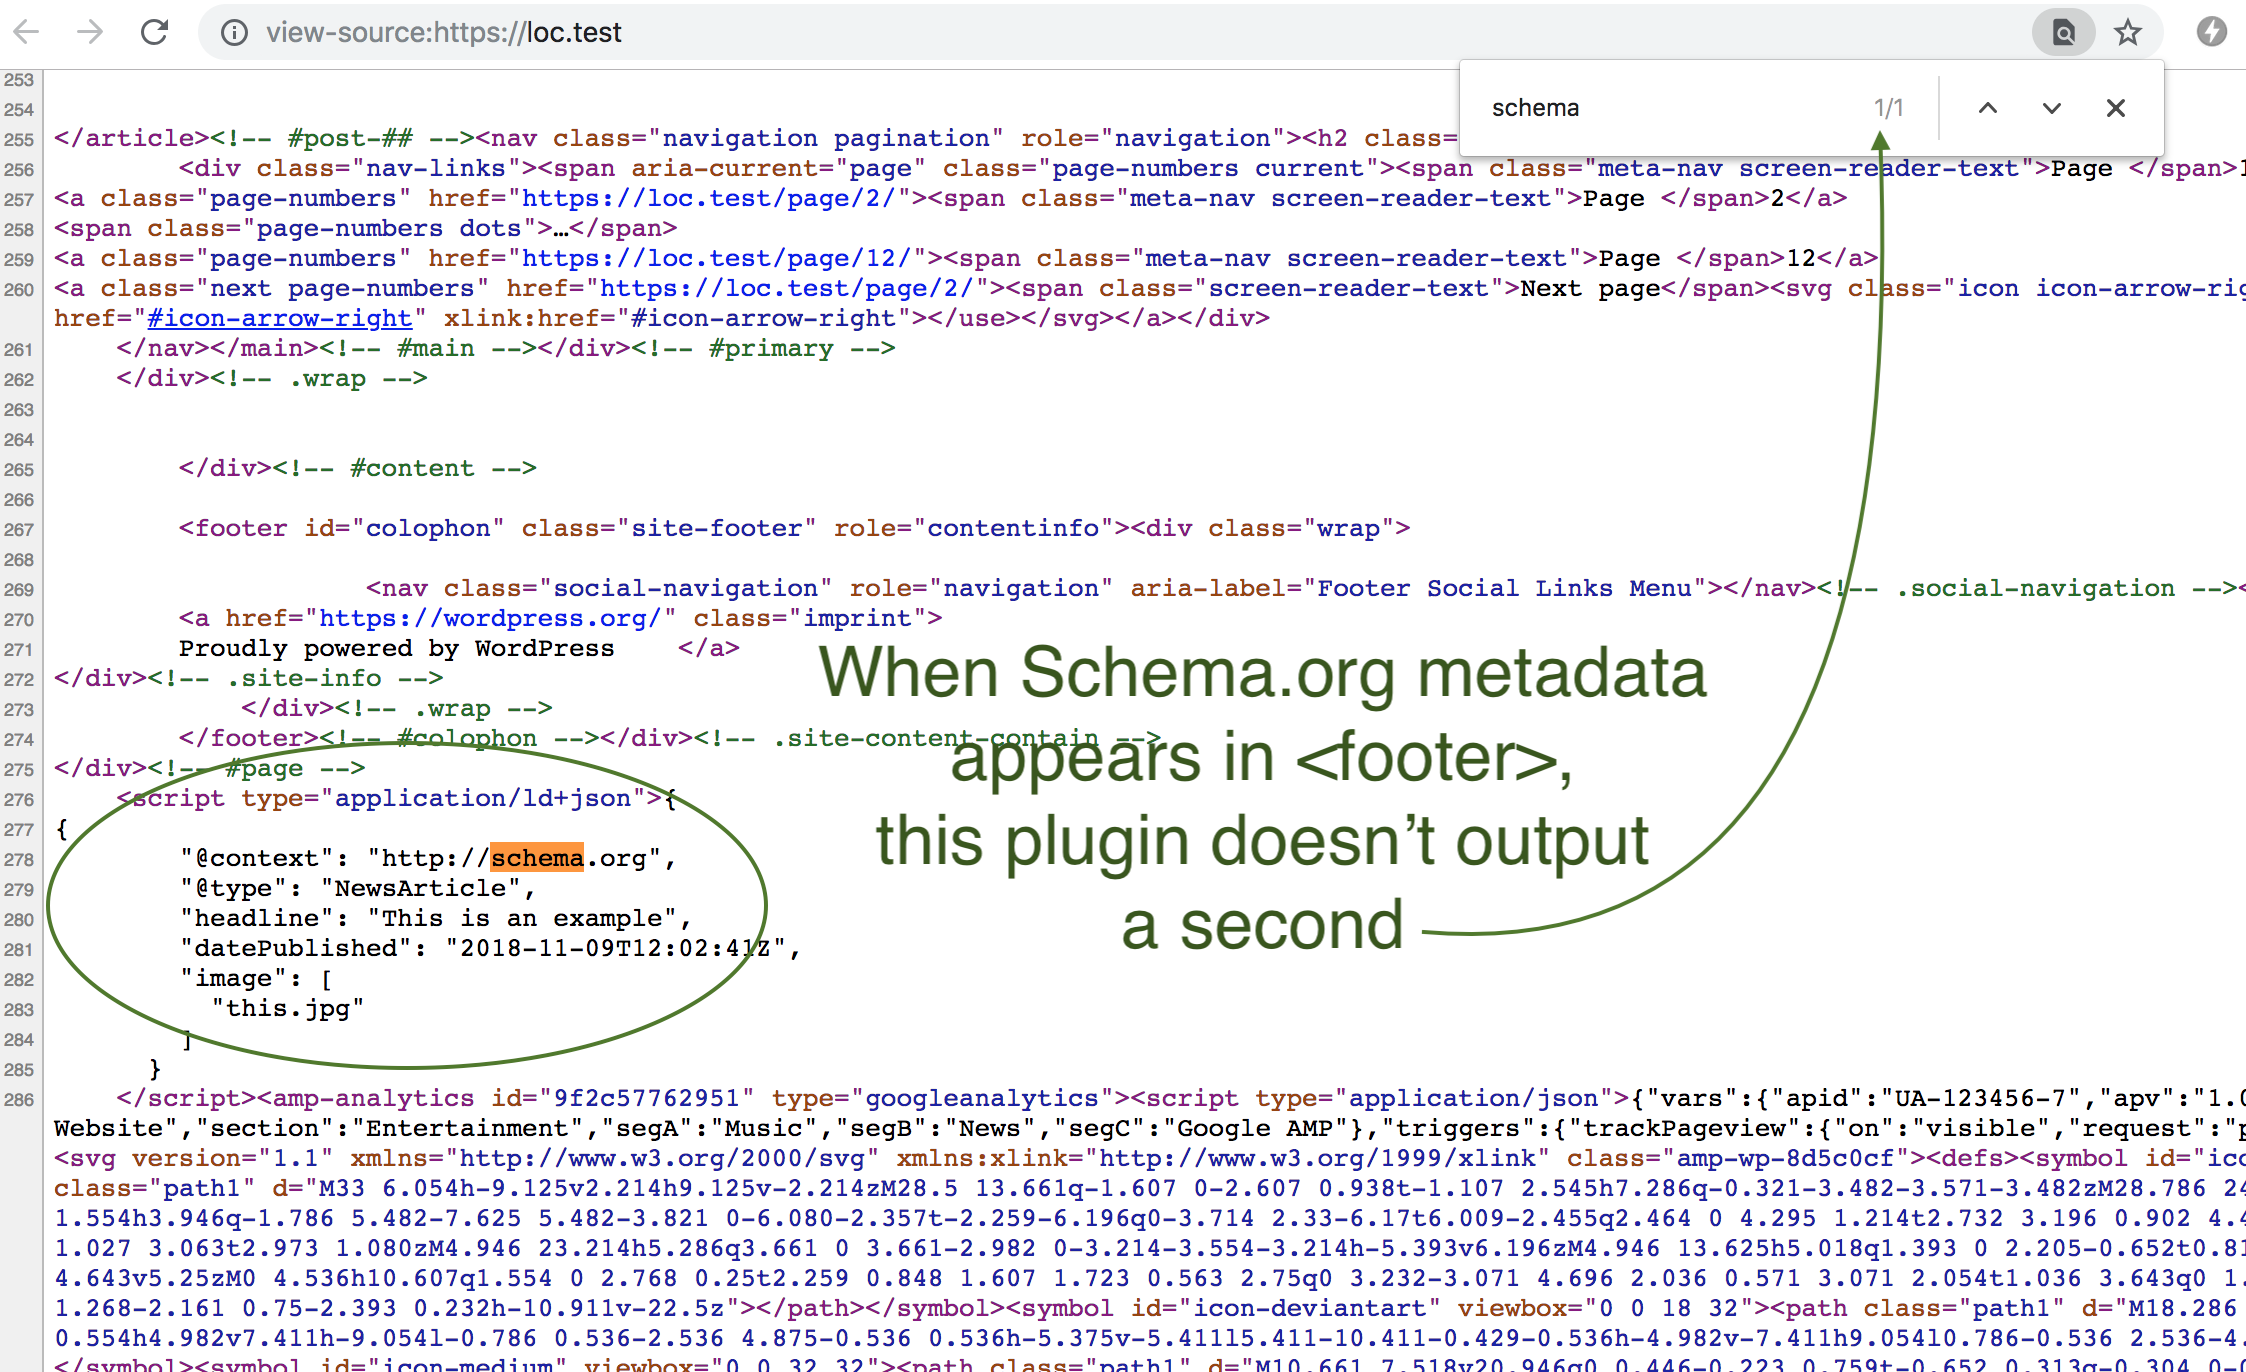 schema-appears-footer